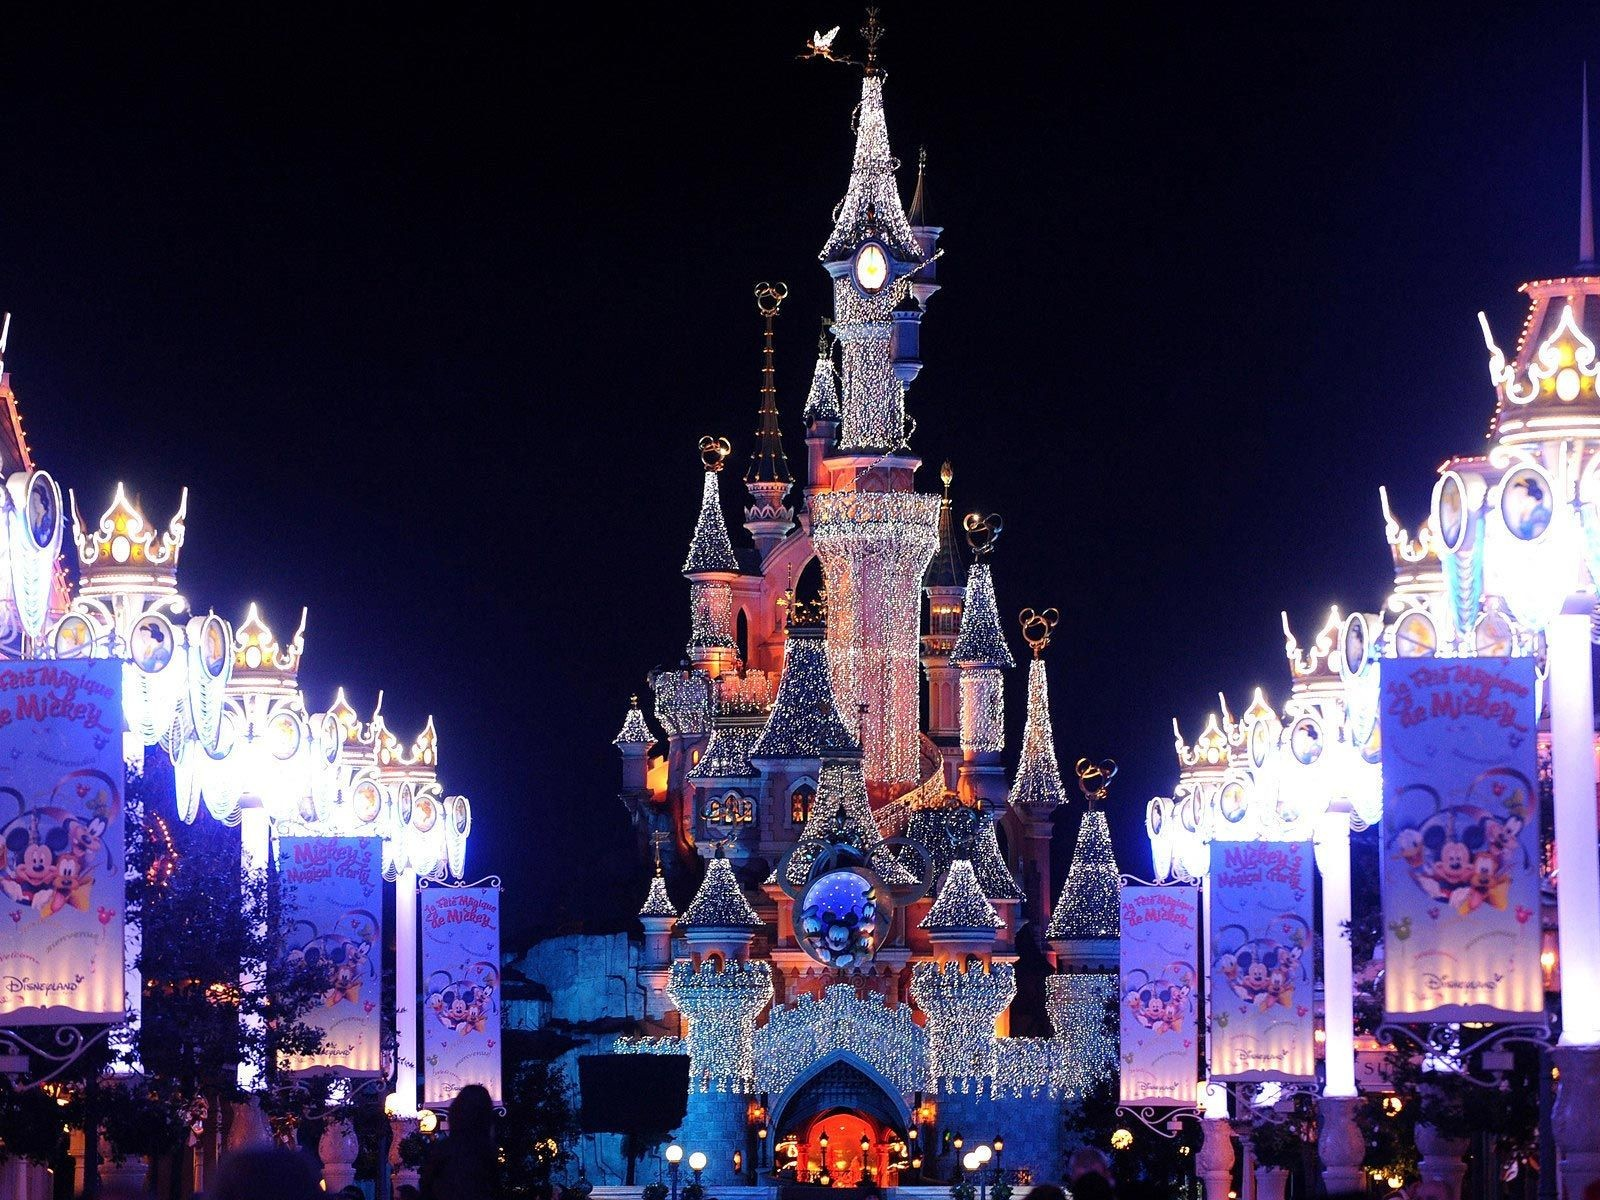 wallpaper Disneyland Park Wallpaper hd wallpaper background desktop 1600x1200